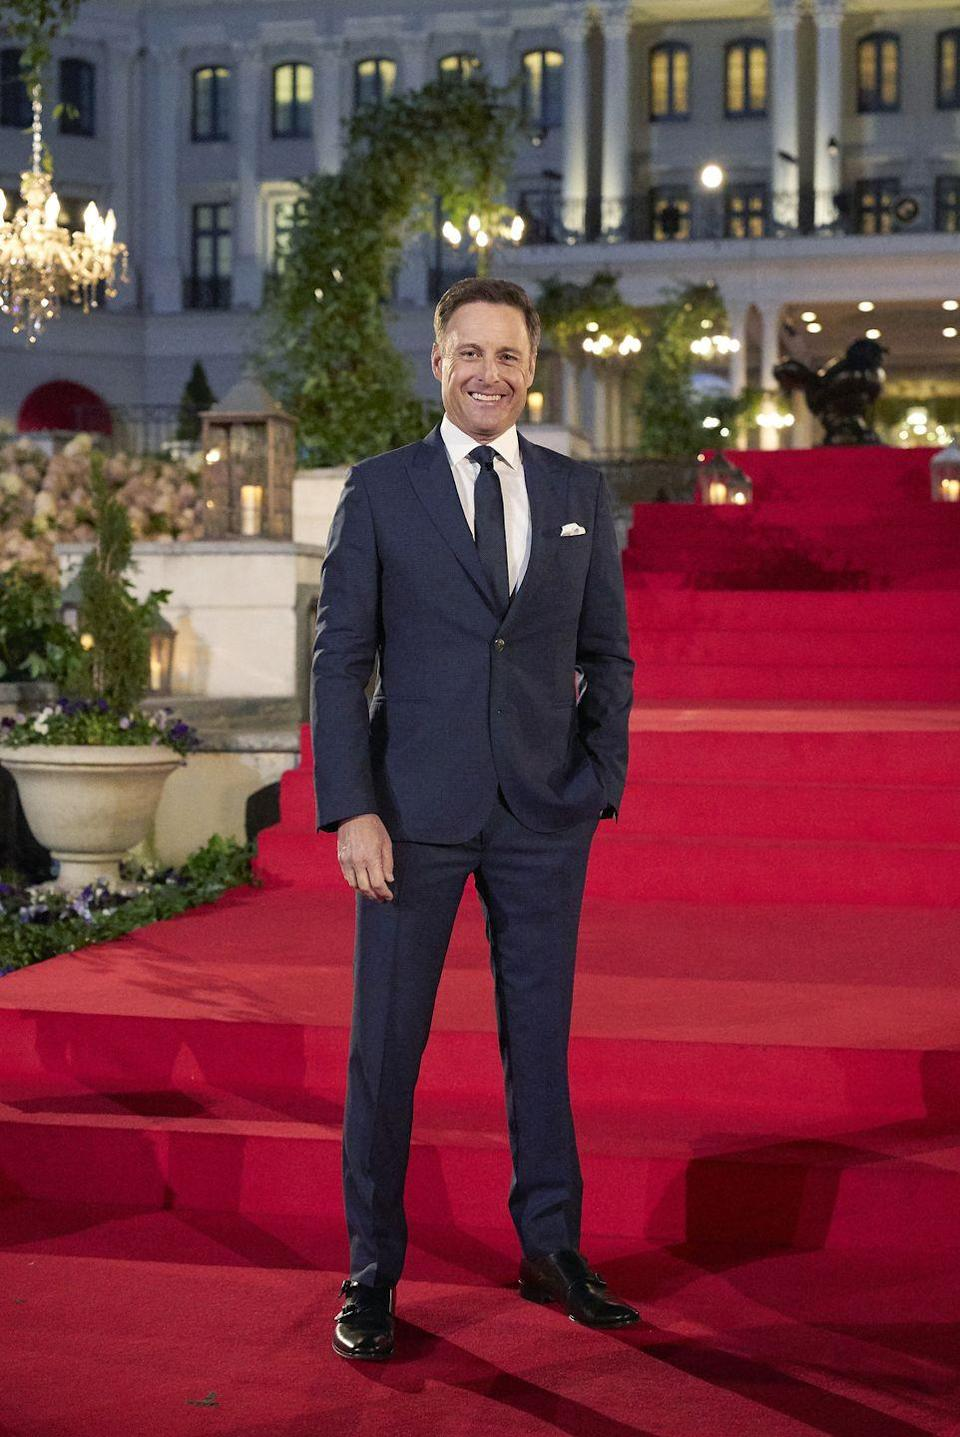 "<p>Scott Jeffrees told Amy Kaufman (via <a href=""https://www.elle.com/culture/movies-tv/a19136467/bachelor-nation-book-most-shocking-revelations/"" rel=""nofollow noopener"" target=""_blank"" data-ylk=""slk:Elle"" class=""link rapid-noclick-resp""><em>Elle</em></a>) for<em><a href=""https://www.amazon.com/Bachelor-Nation-Americas-Favorite-Pleasure/dp/1101985909"" rel=""nofollow noopener"" target=""_blank"" data-ylk=""slk:Bachelor Nation: Inside the World of America's Favorite Guilty Pleasure"" class=""link rapid-noclick-resp""> Bachelor Nation: Inside the World of America's Favorite Guilty Pleasure</a></em> that he used to keep ""a wad of crisp $100 bills in his pocket"" to give to anyone who delivered the best drama.</p>"